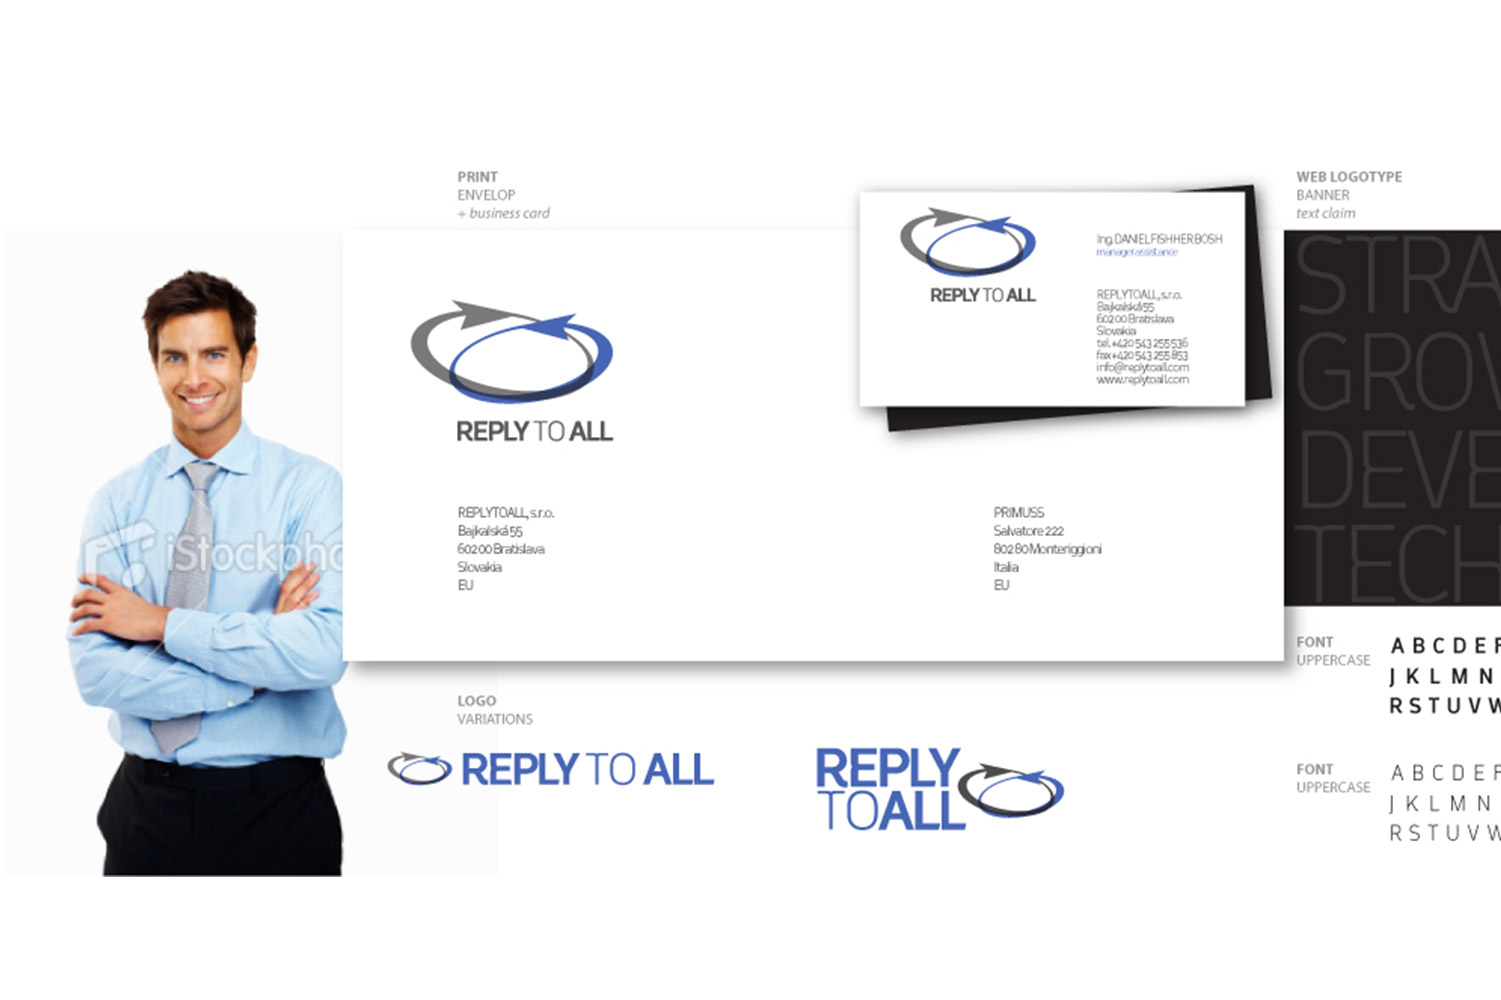 Reply to all, Corporate Identity image